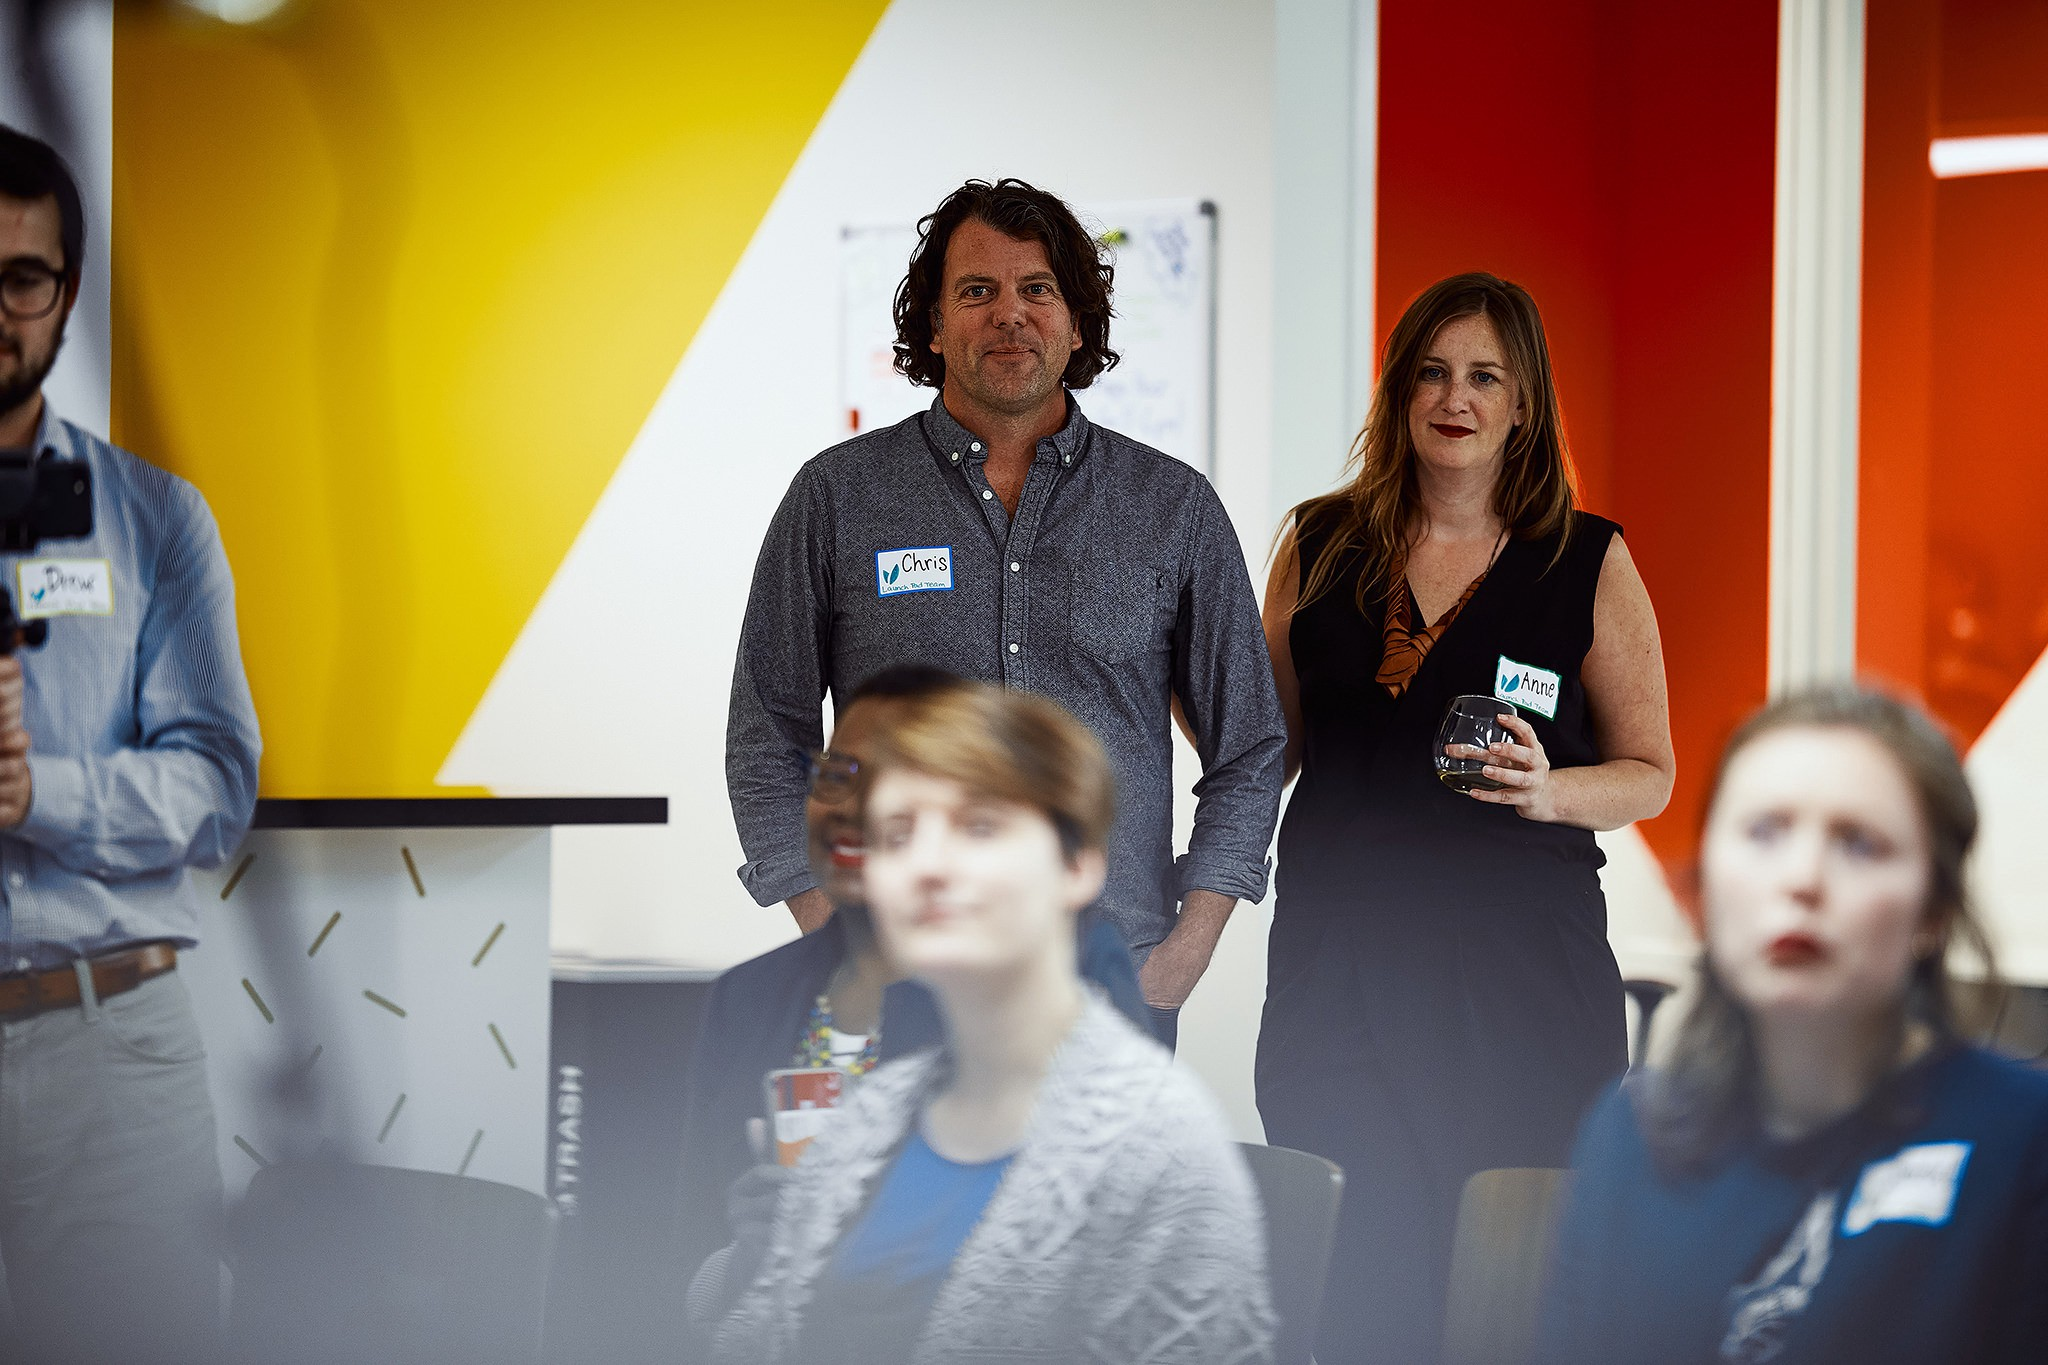 Launch Pad founders Anne Driscoll and Chris Schultz at the Memphis grand opening in March 2018.